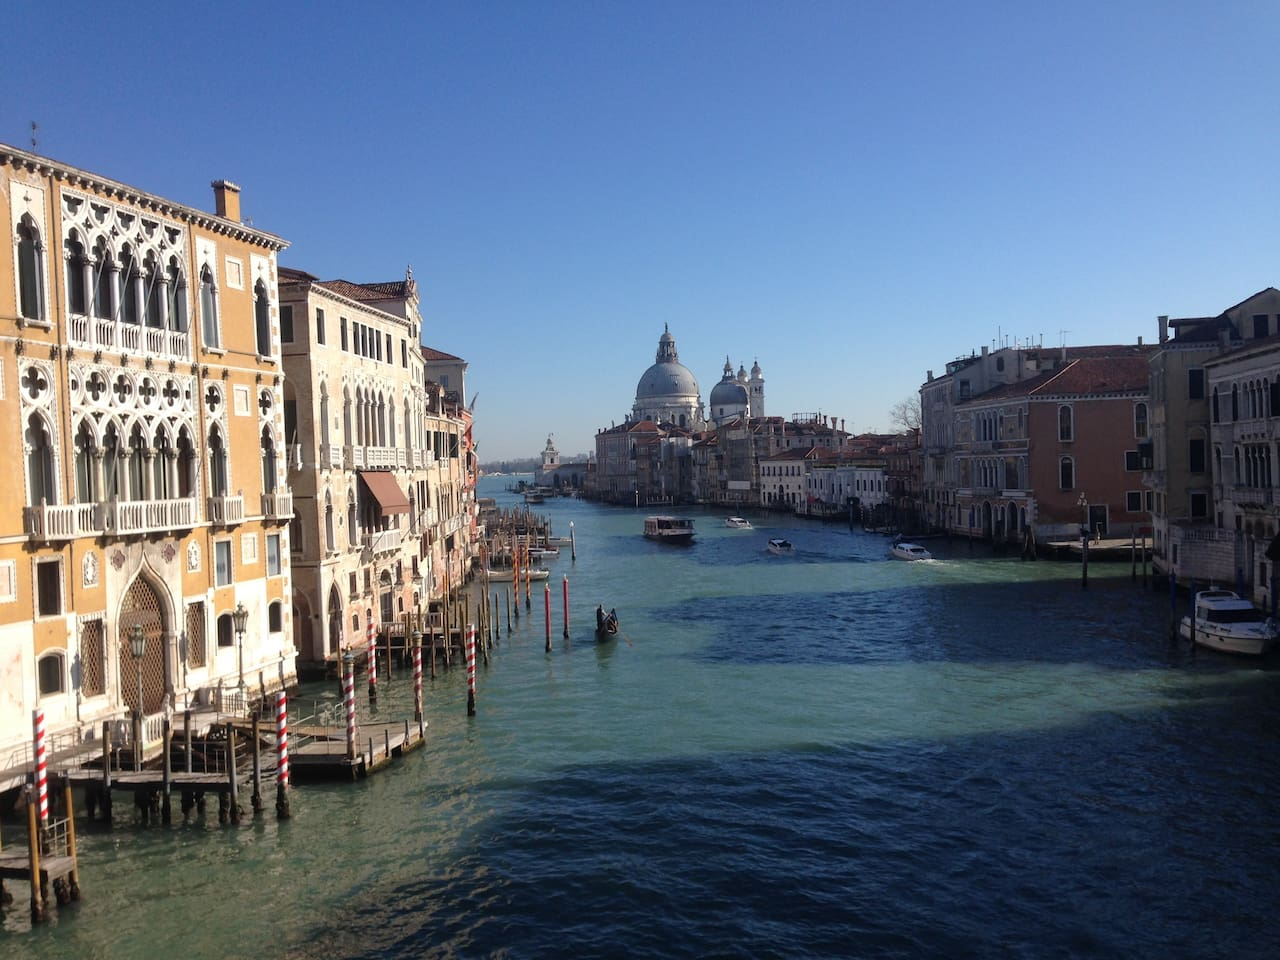 view from the Accademia Bridge